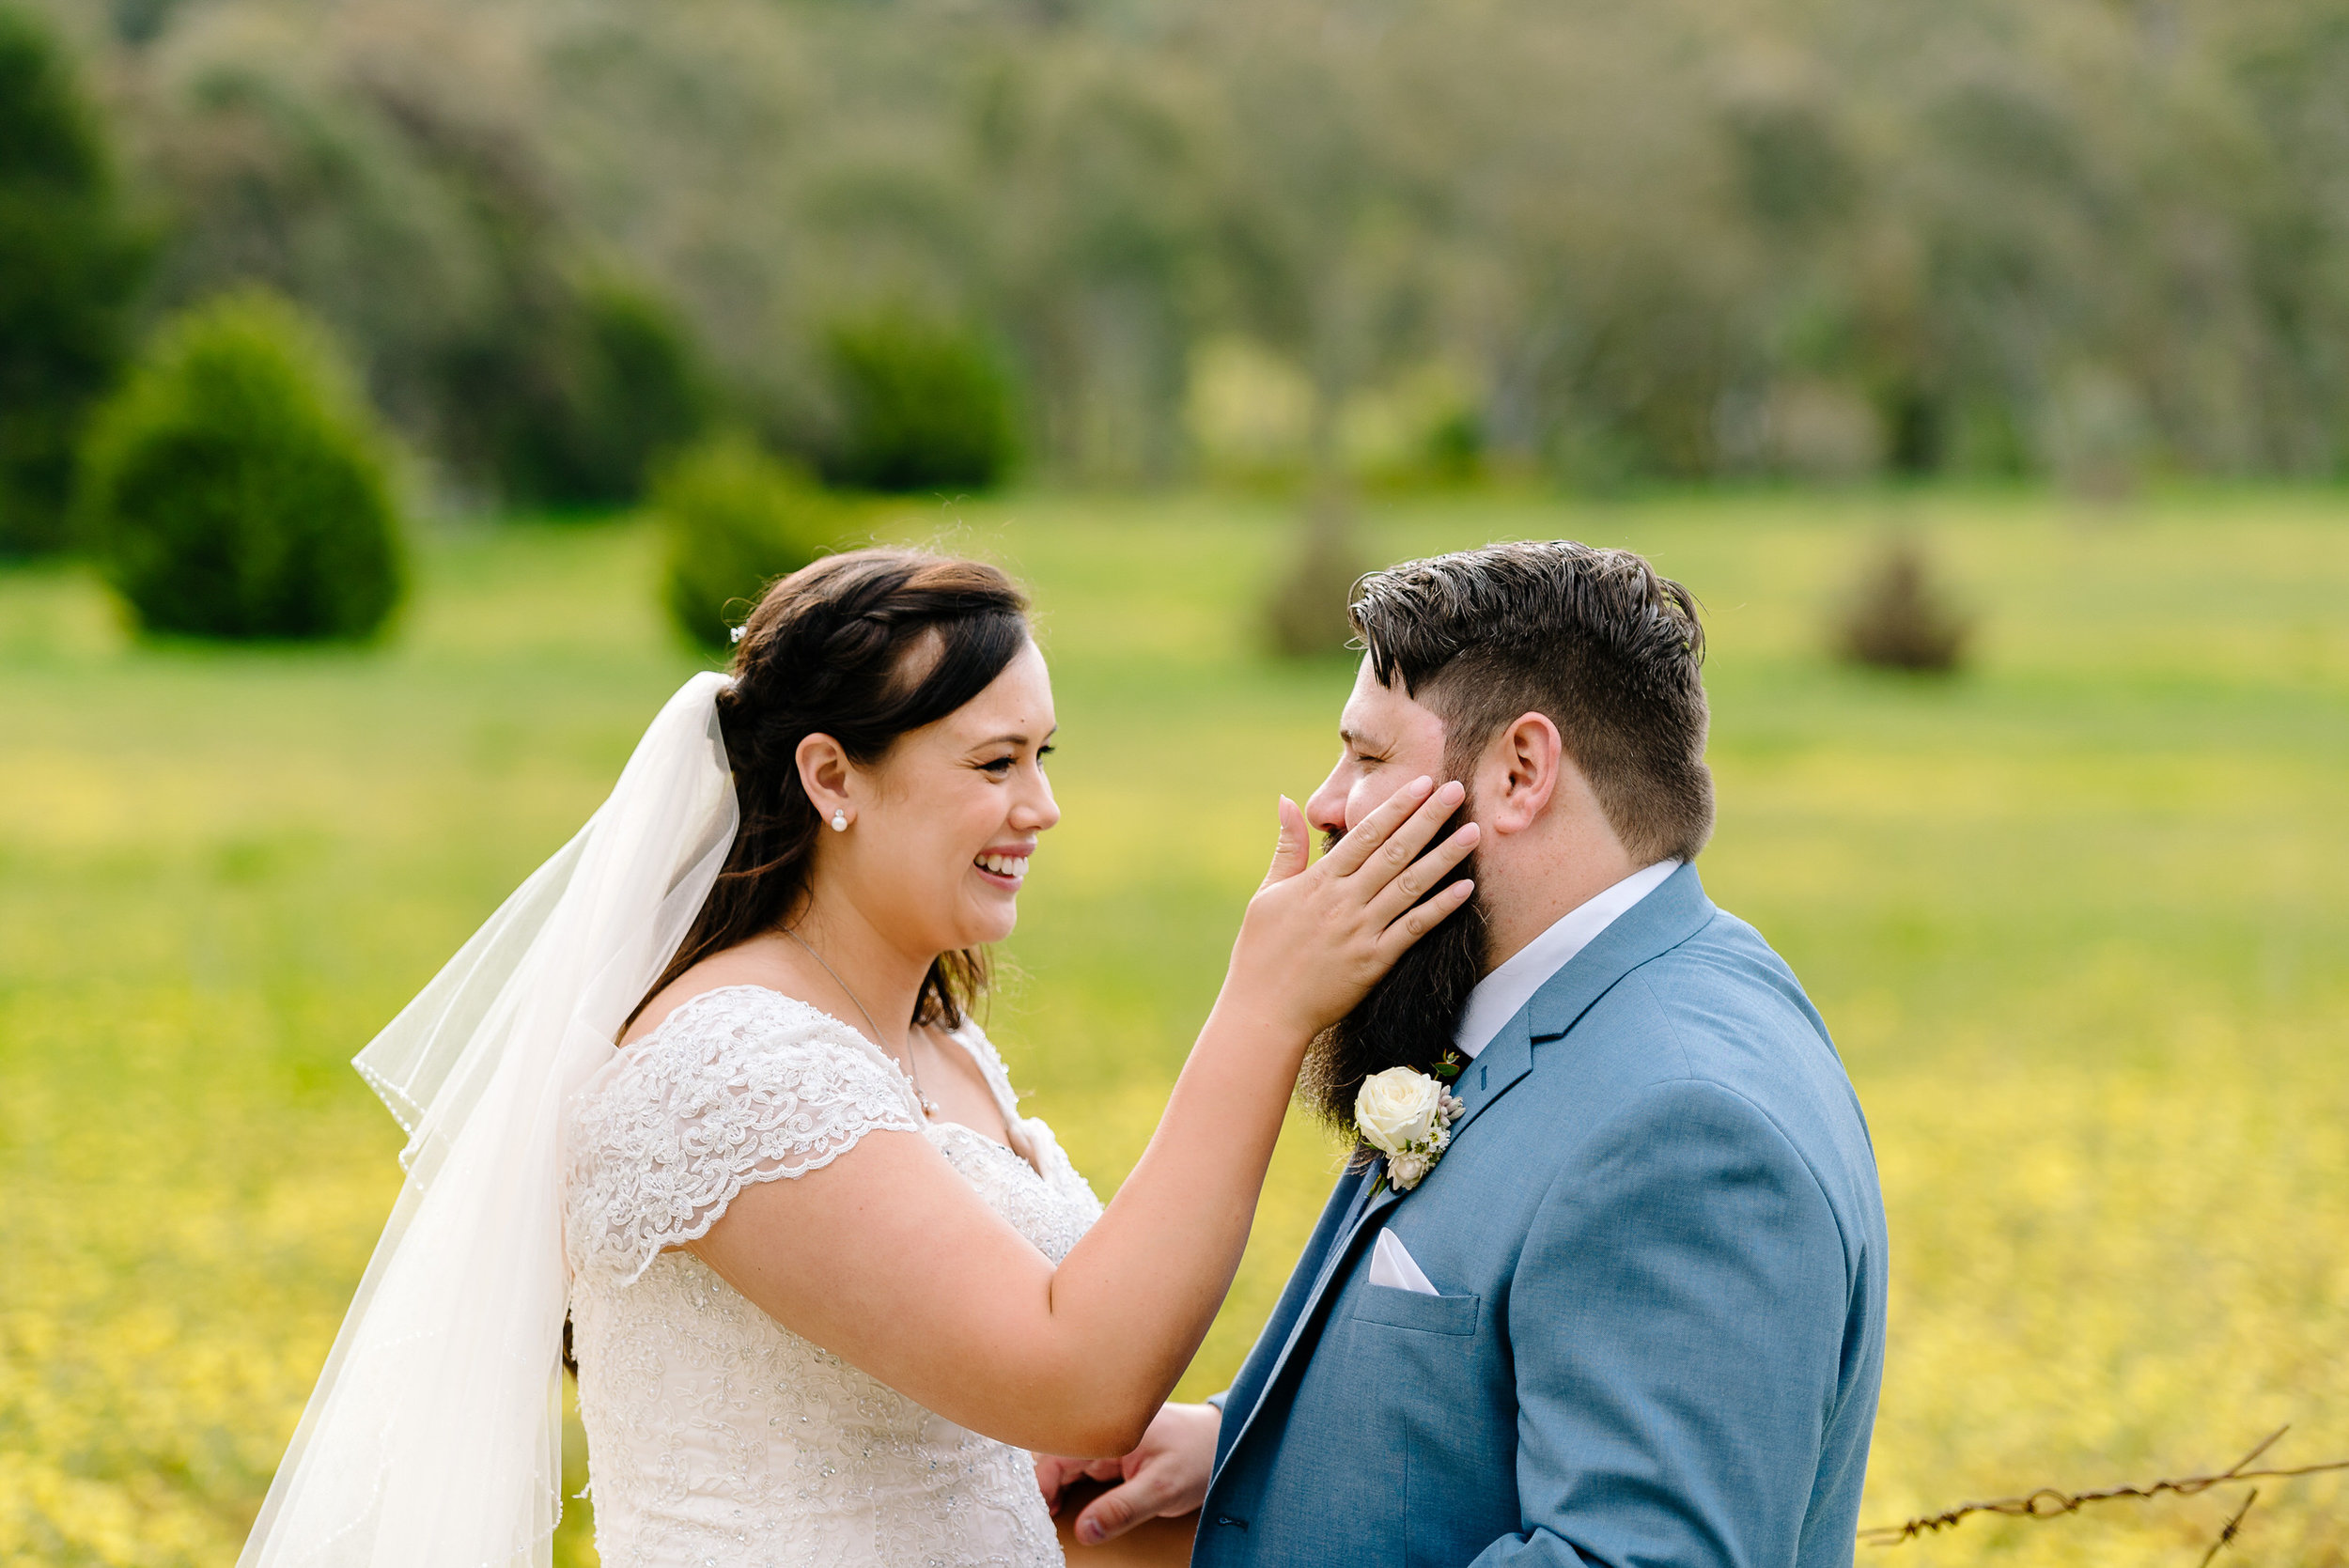 Chateau_Dore_Wedding_Photography_Justin_and_Jim-171.JPG